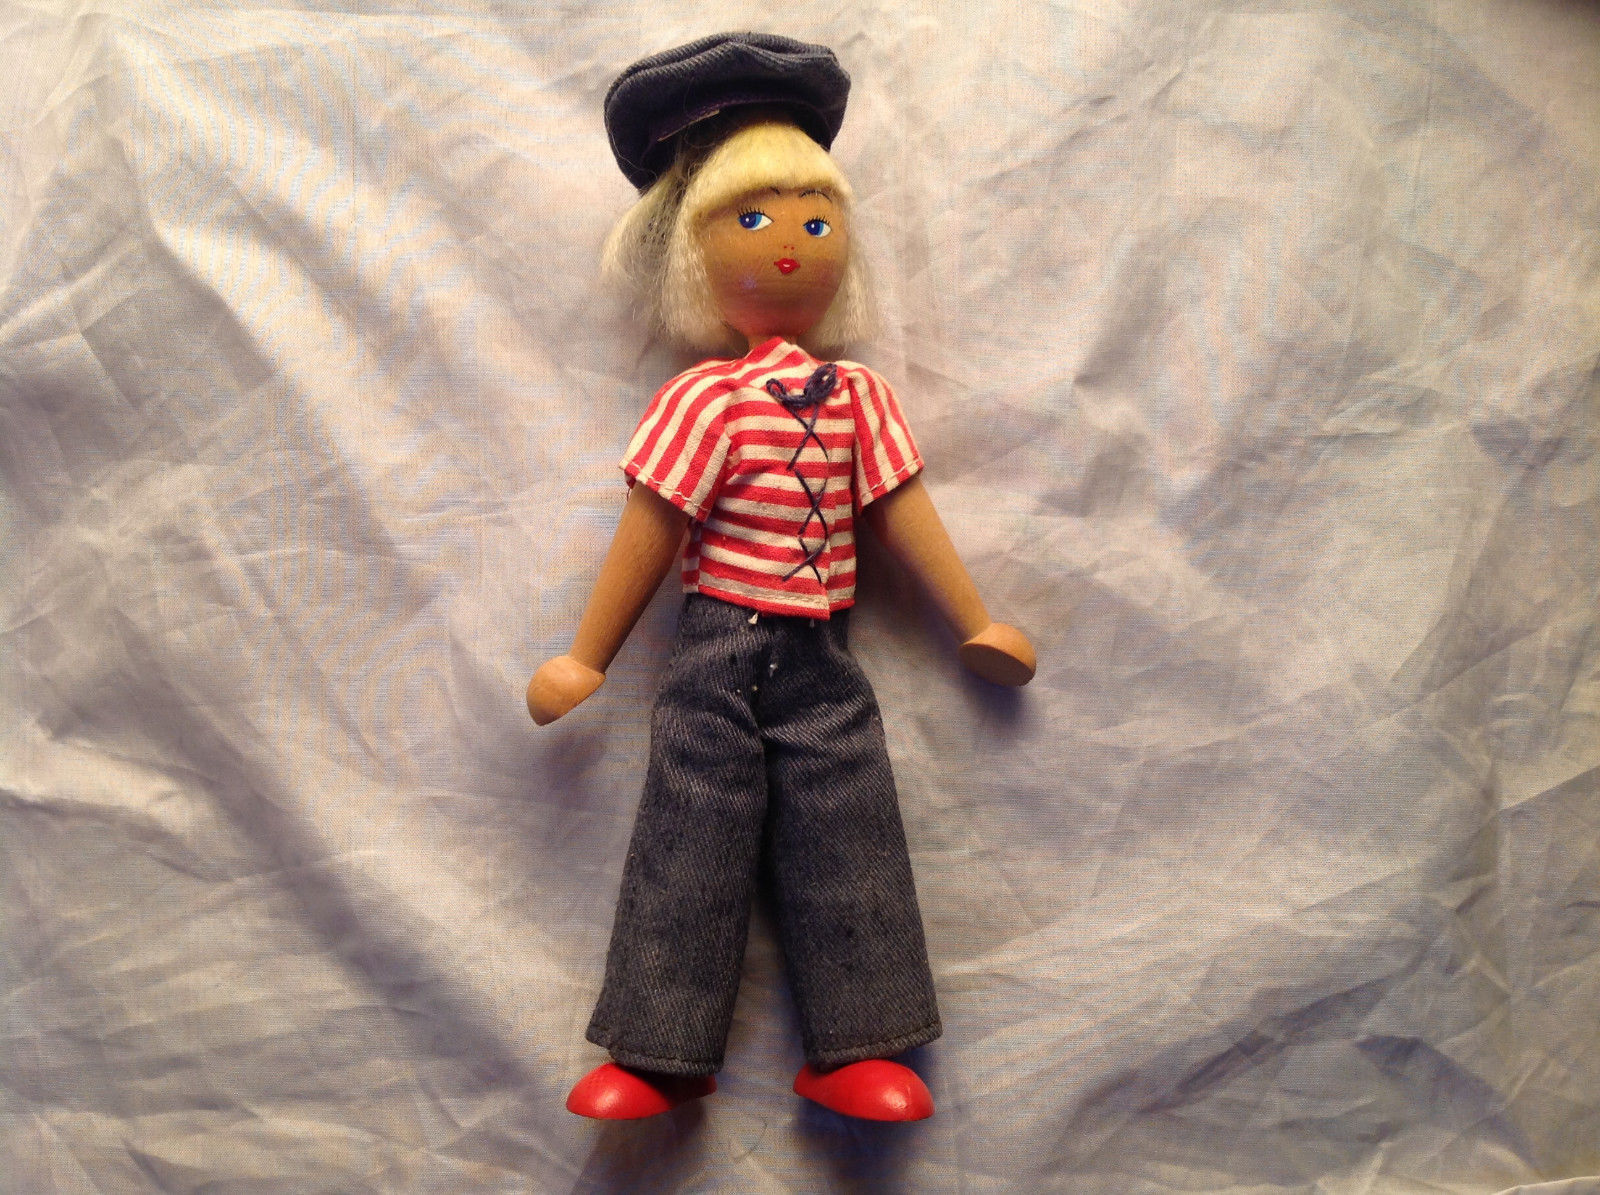 French Wooden Doll with Hat Red Striped Shirt Black Hair Red Shoes Jean Pants